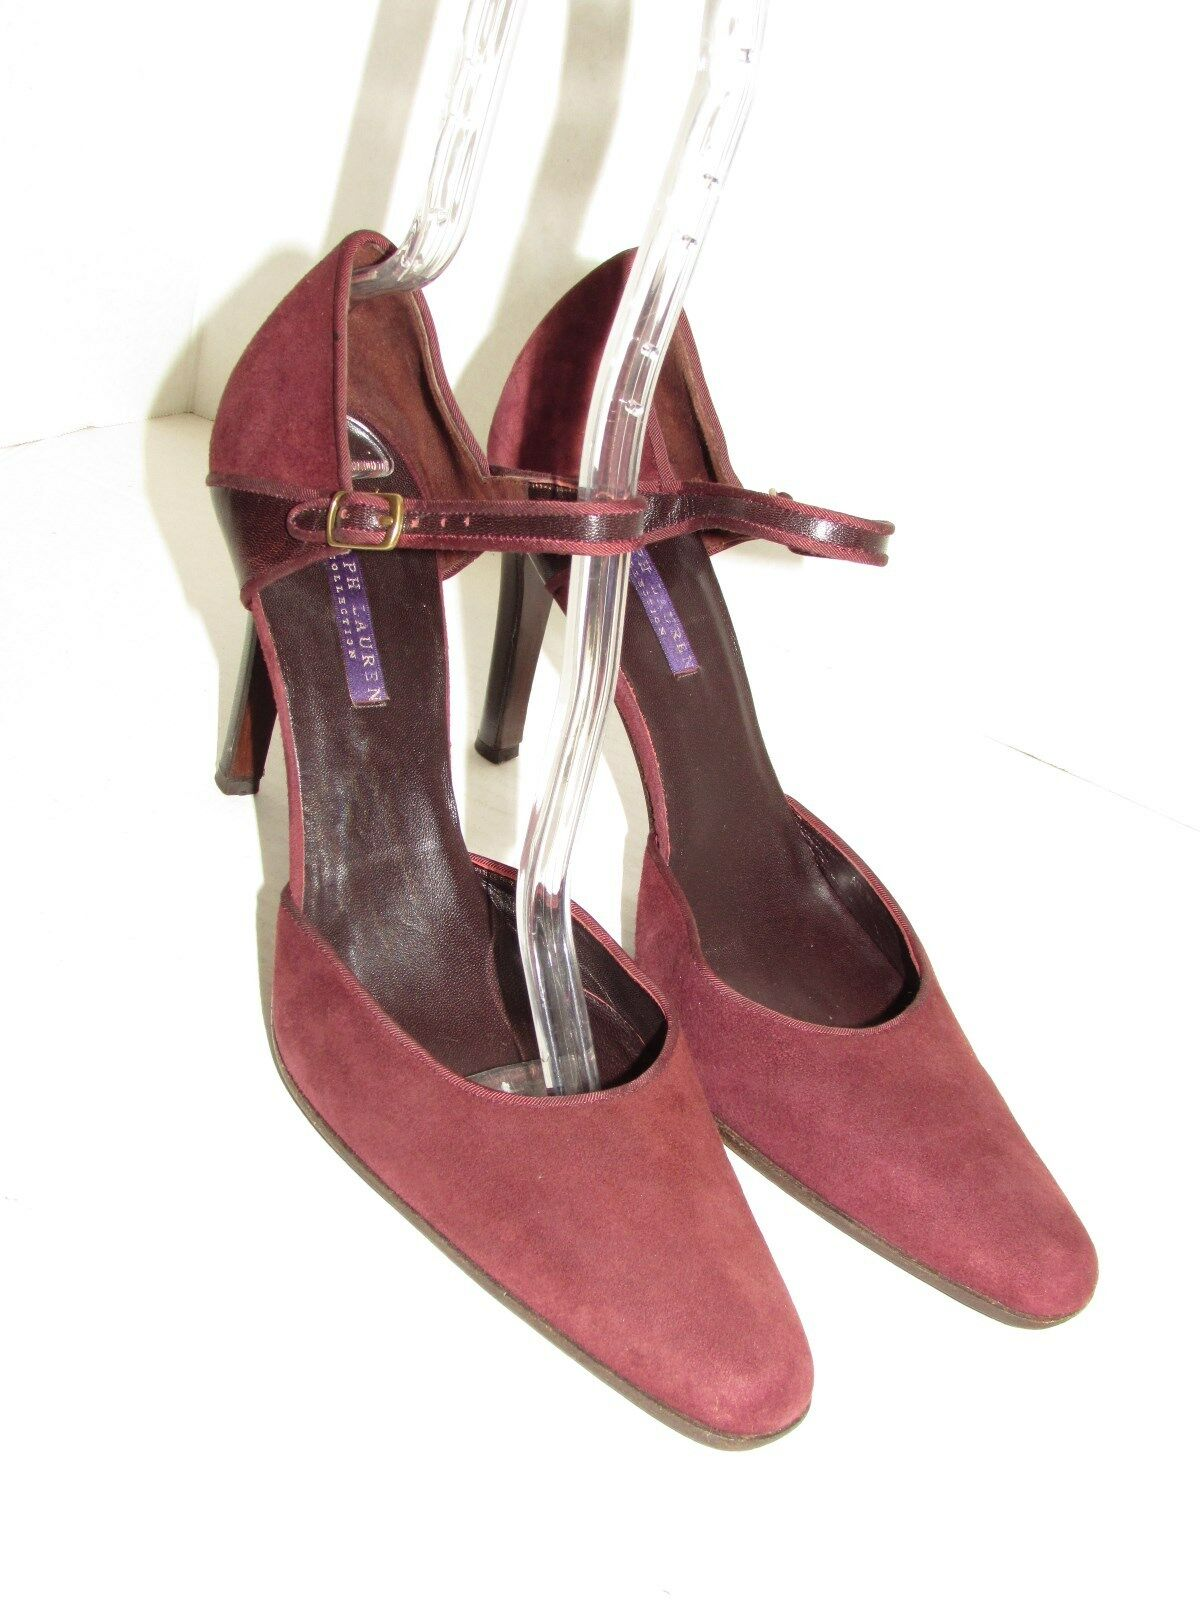 RALPH LAUREN Collection Purple Label Suede-Leder Heel Pumps Schuhes SZ 9.5 B